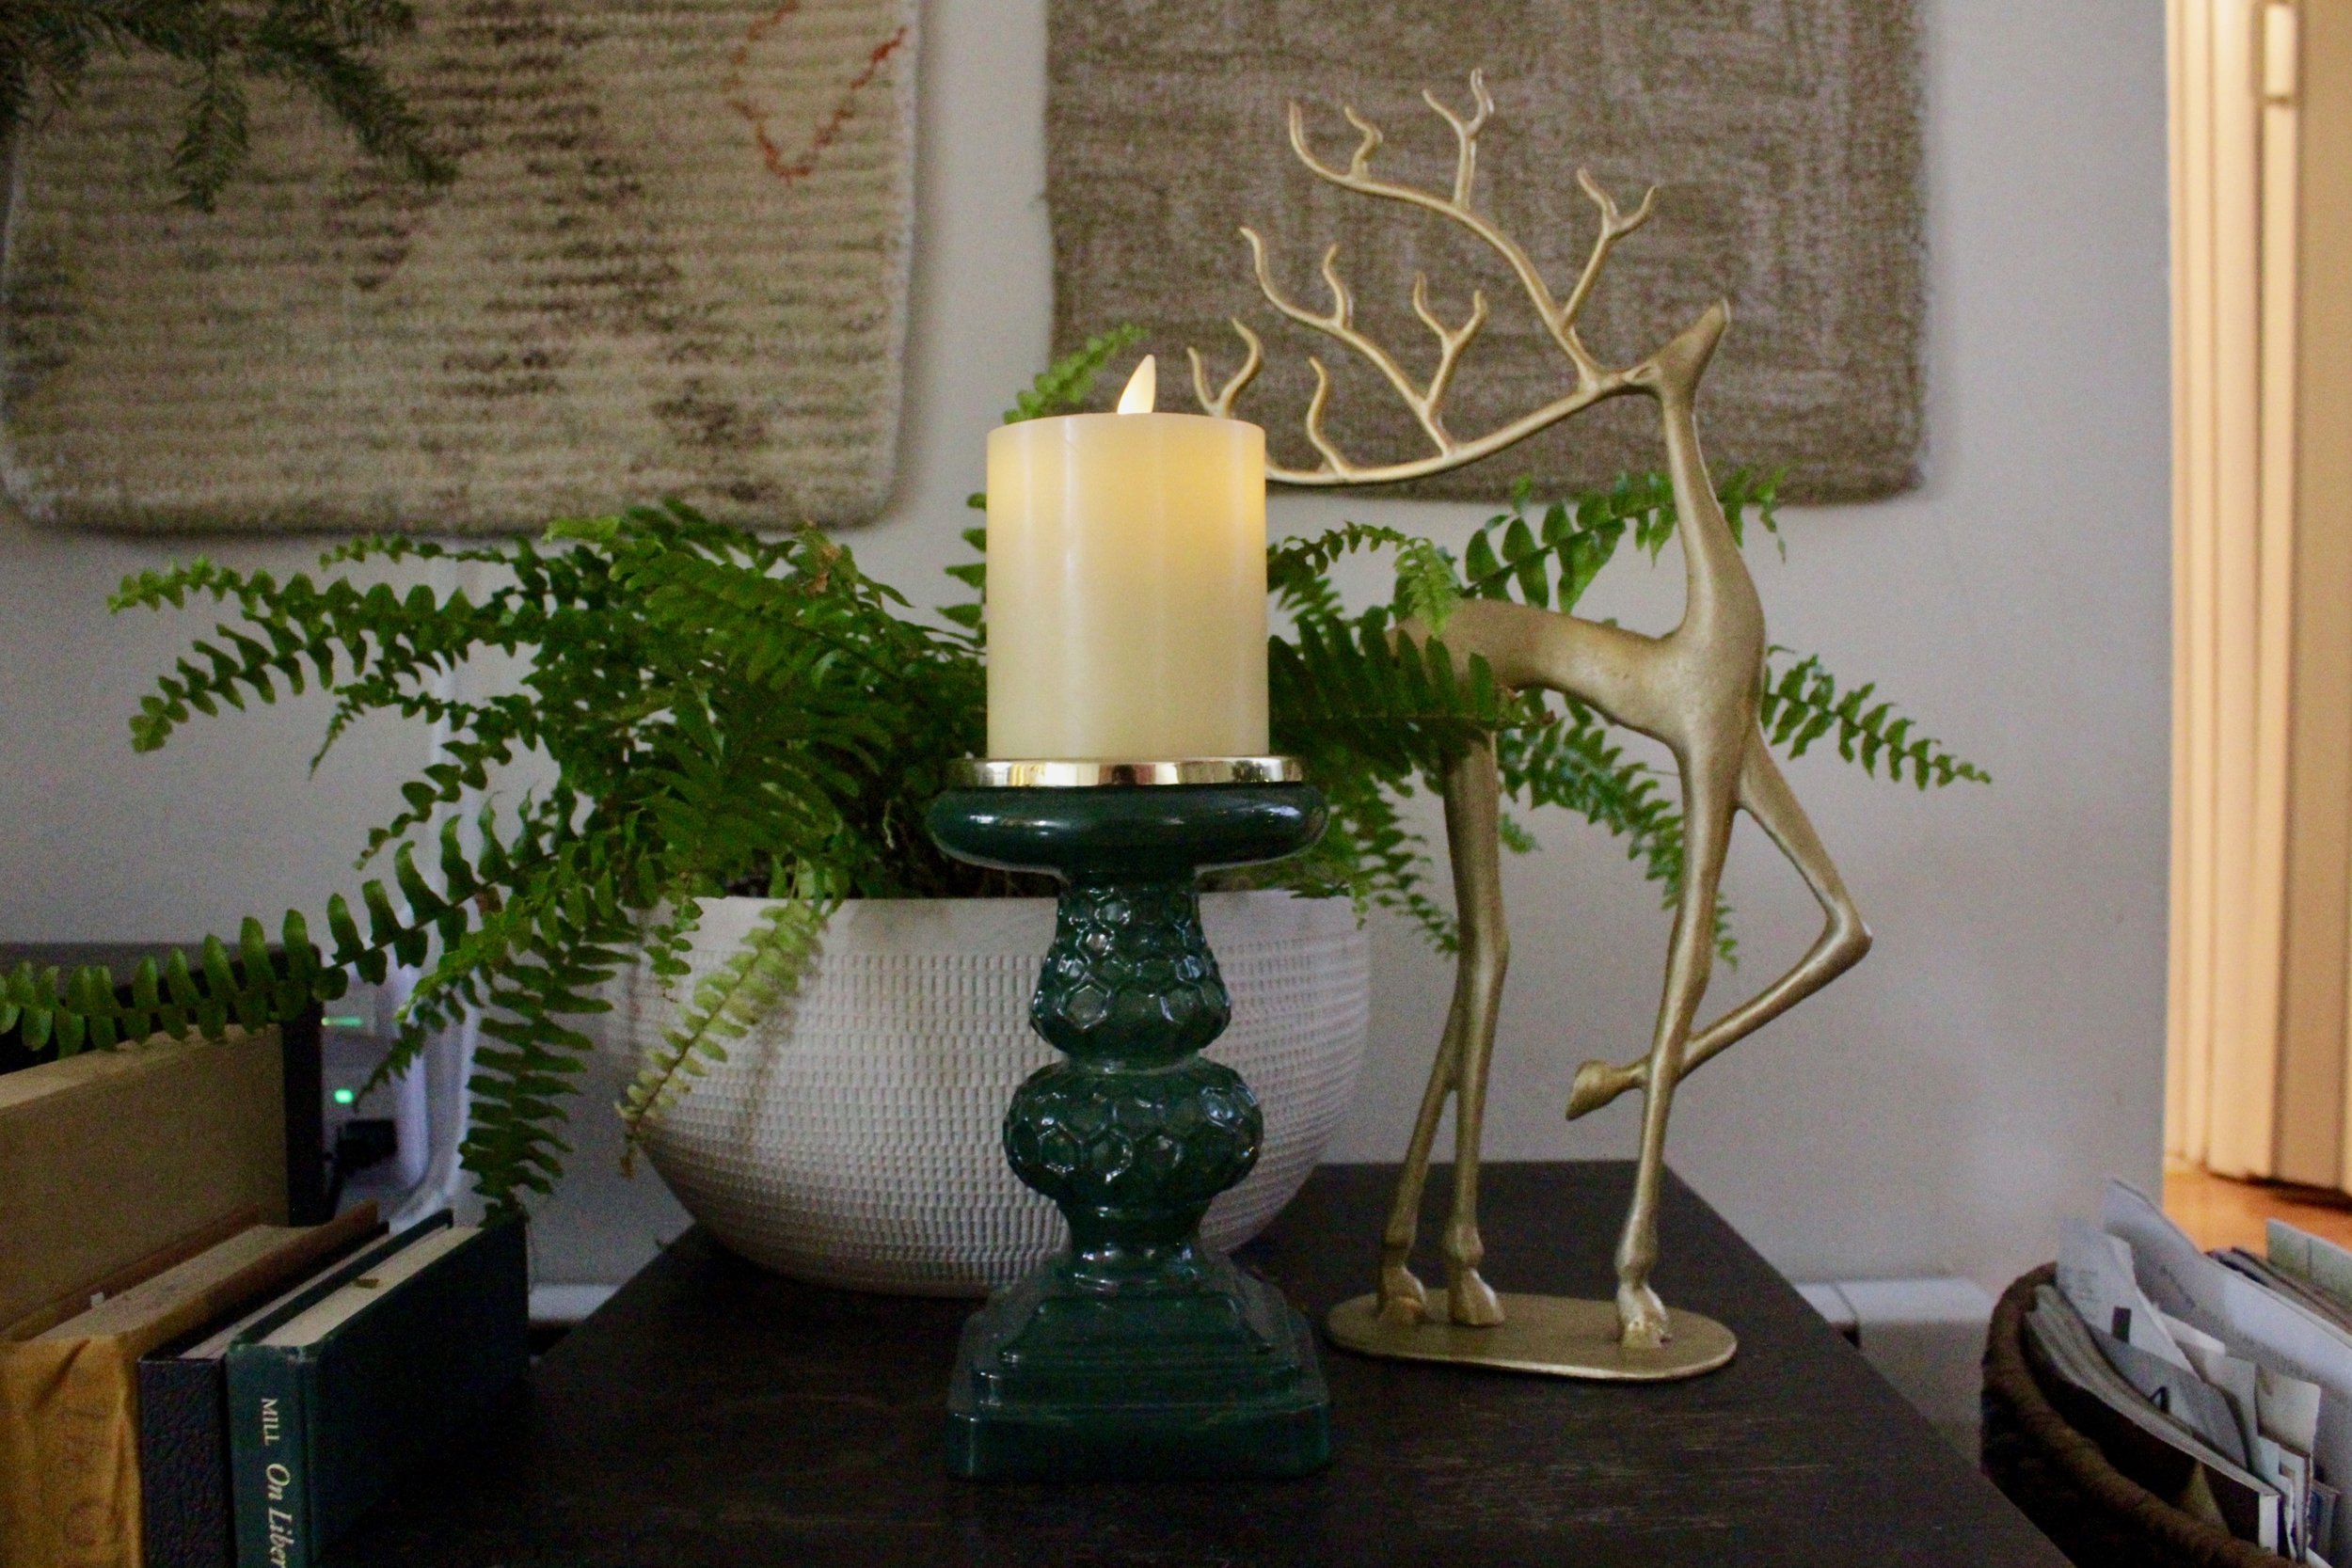 Opal House Candle Holder $14.99 - I have been obsessed with this candle holder since I bought it, comes in other jeweled toned colors but this deep green has my heart! Plus it goes so well with my decor any time of year.Click here to shop